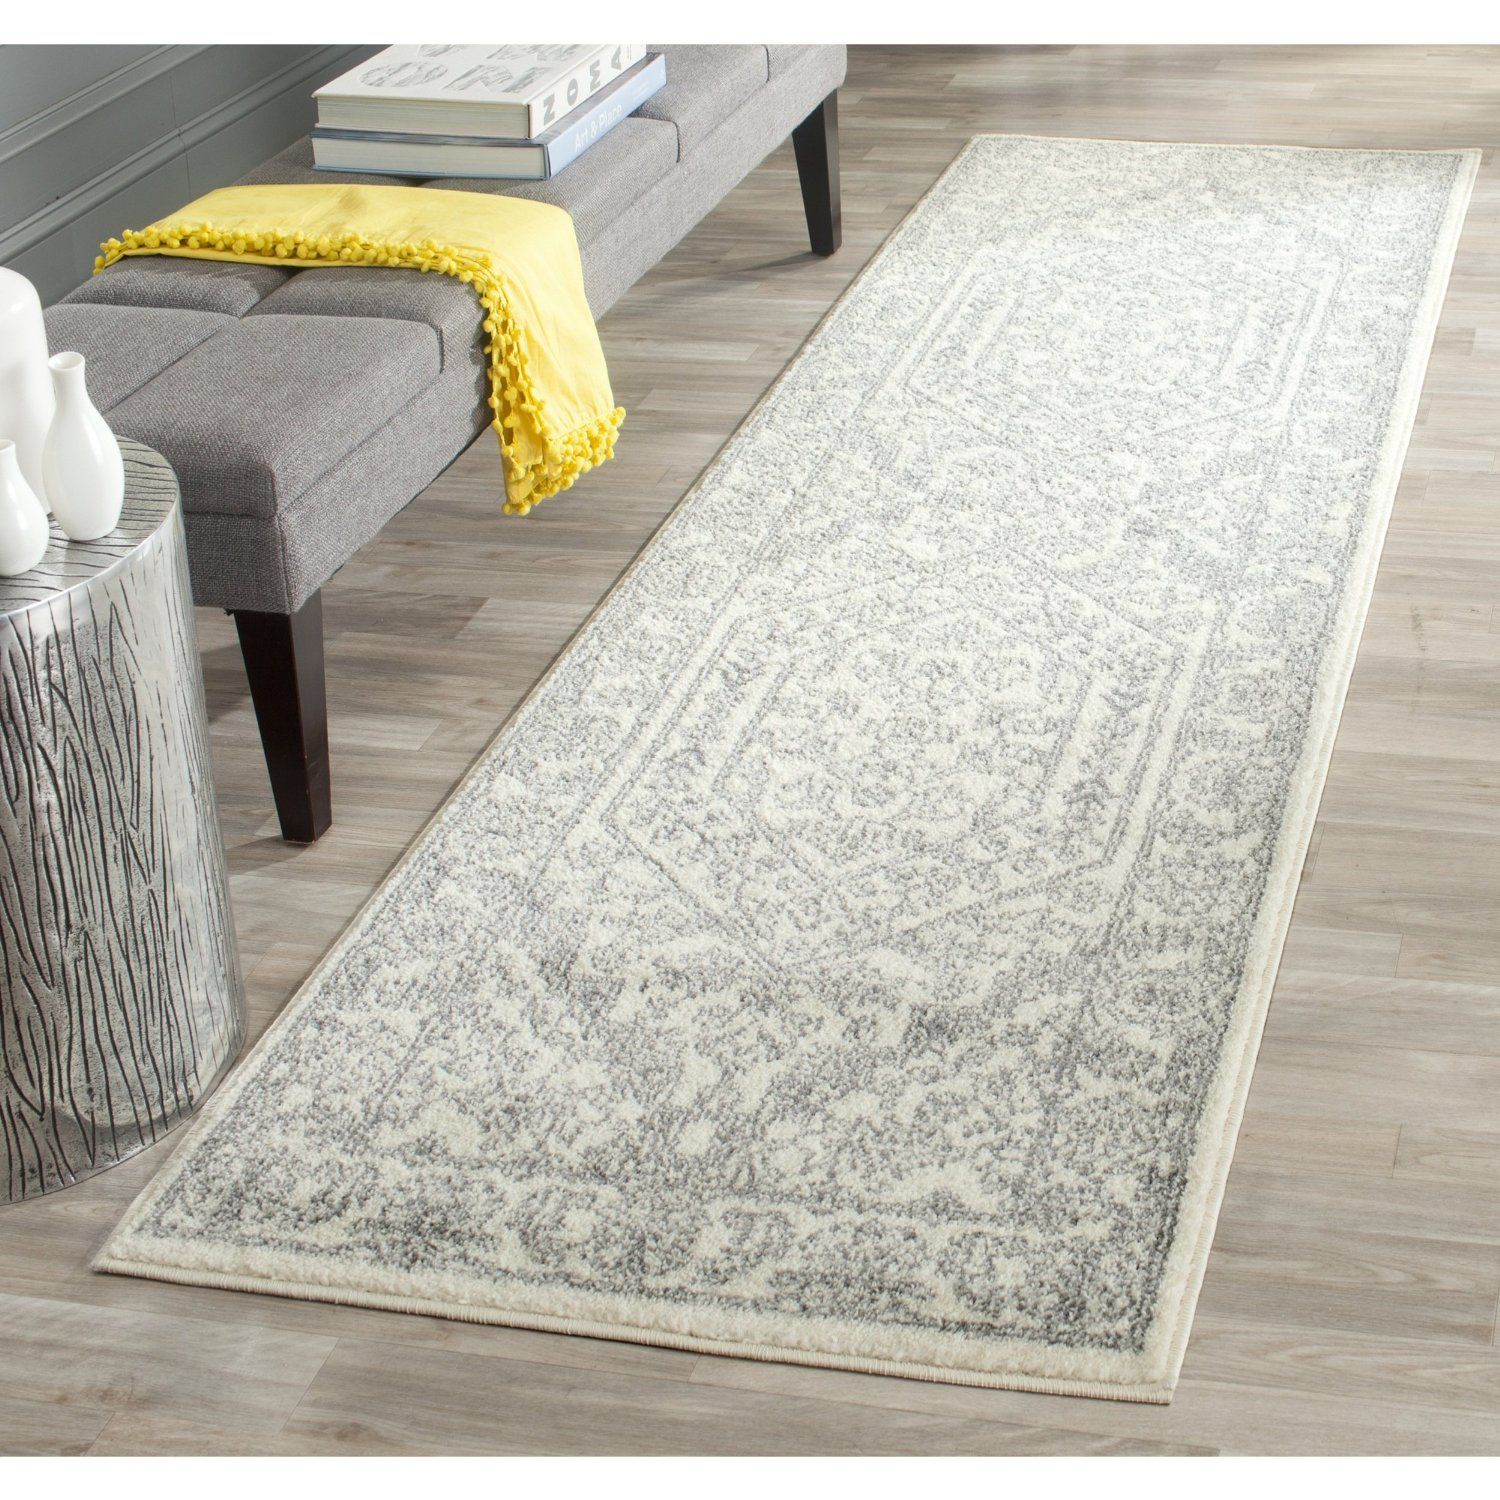 Robot Check Silver Rug Rug Runner Area Rugs